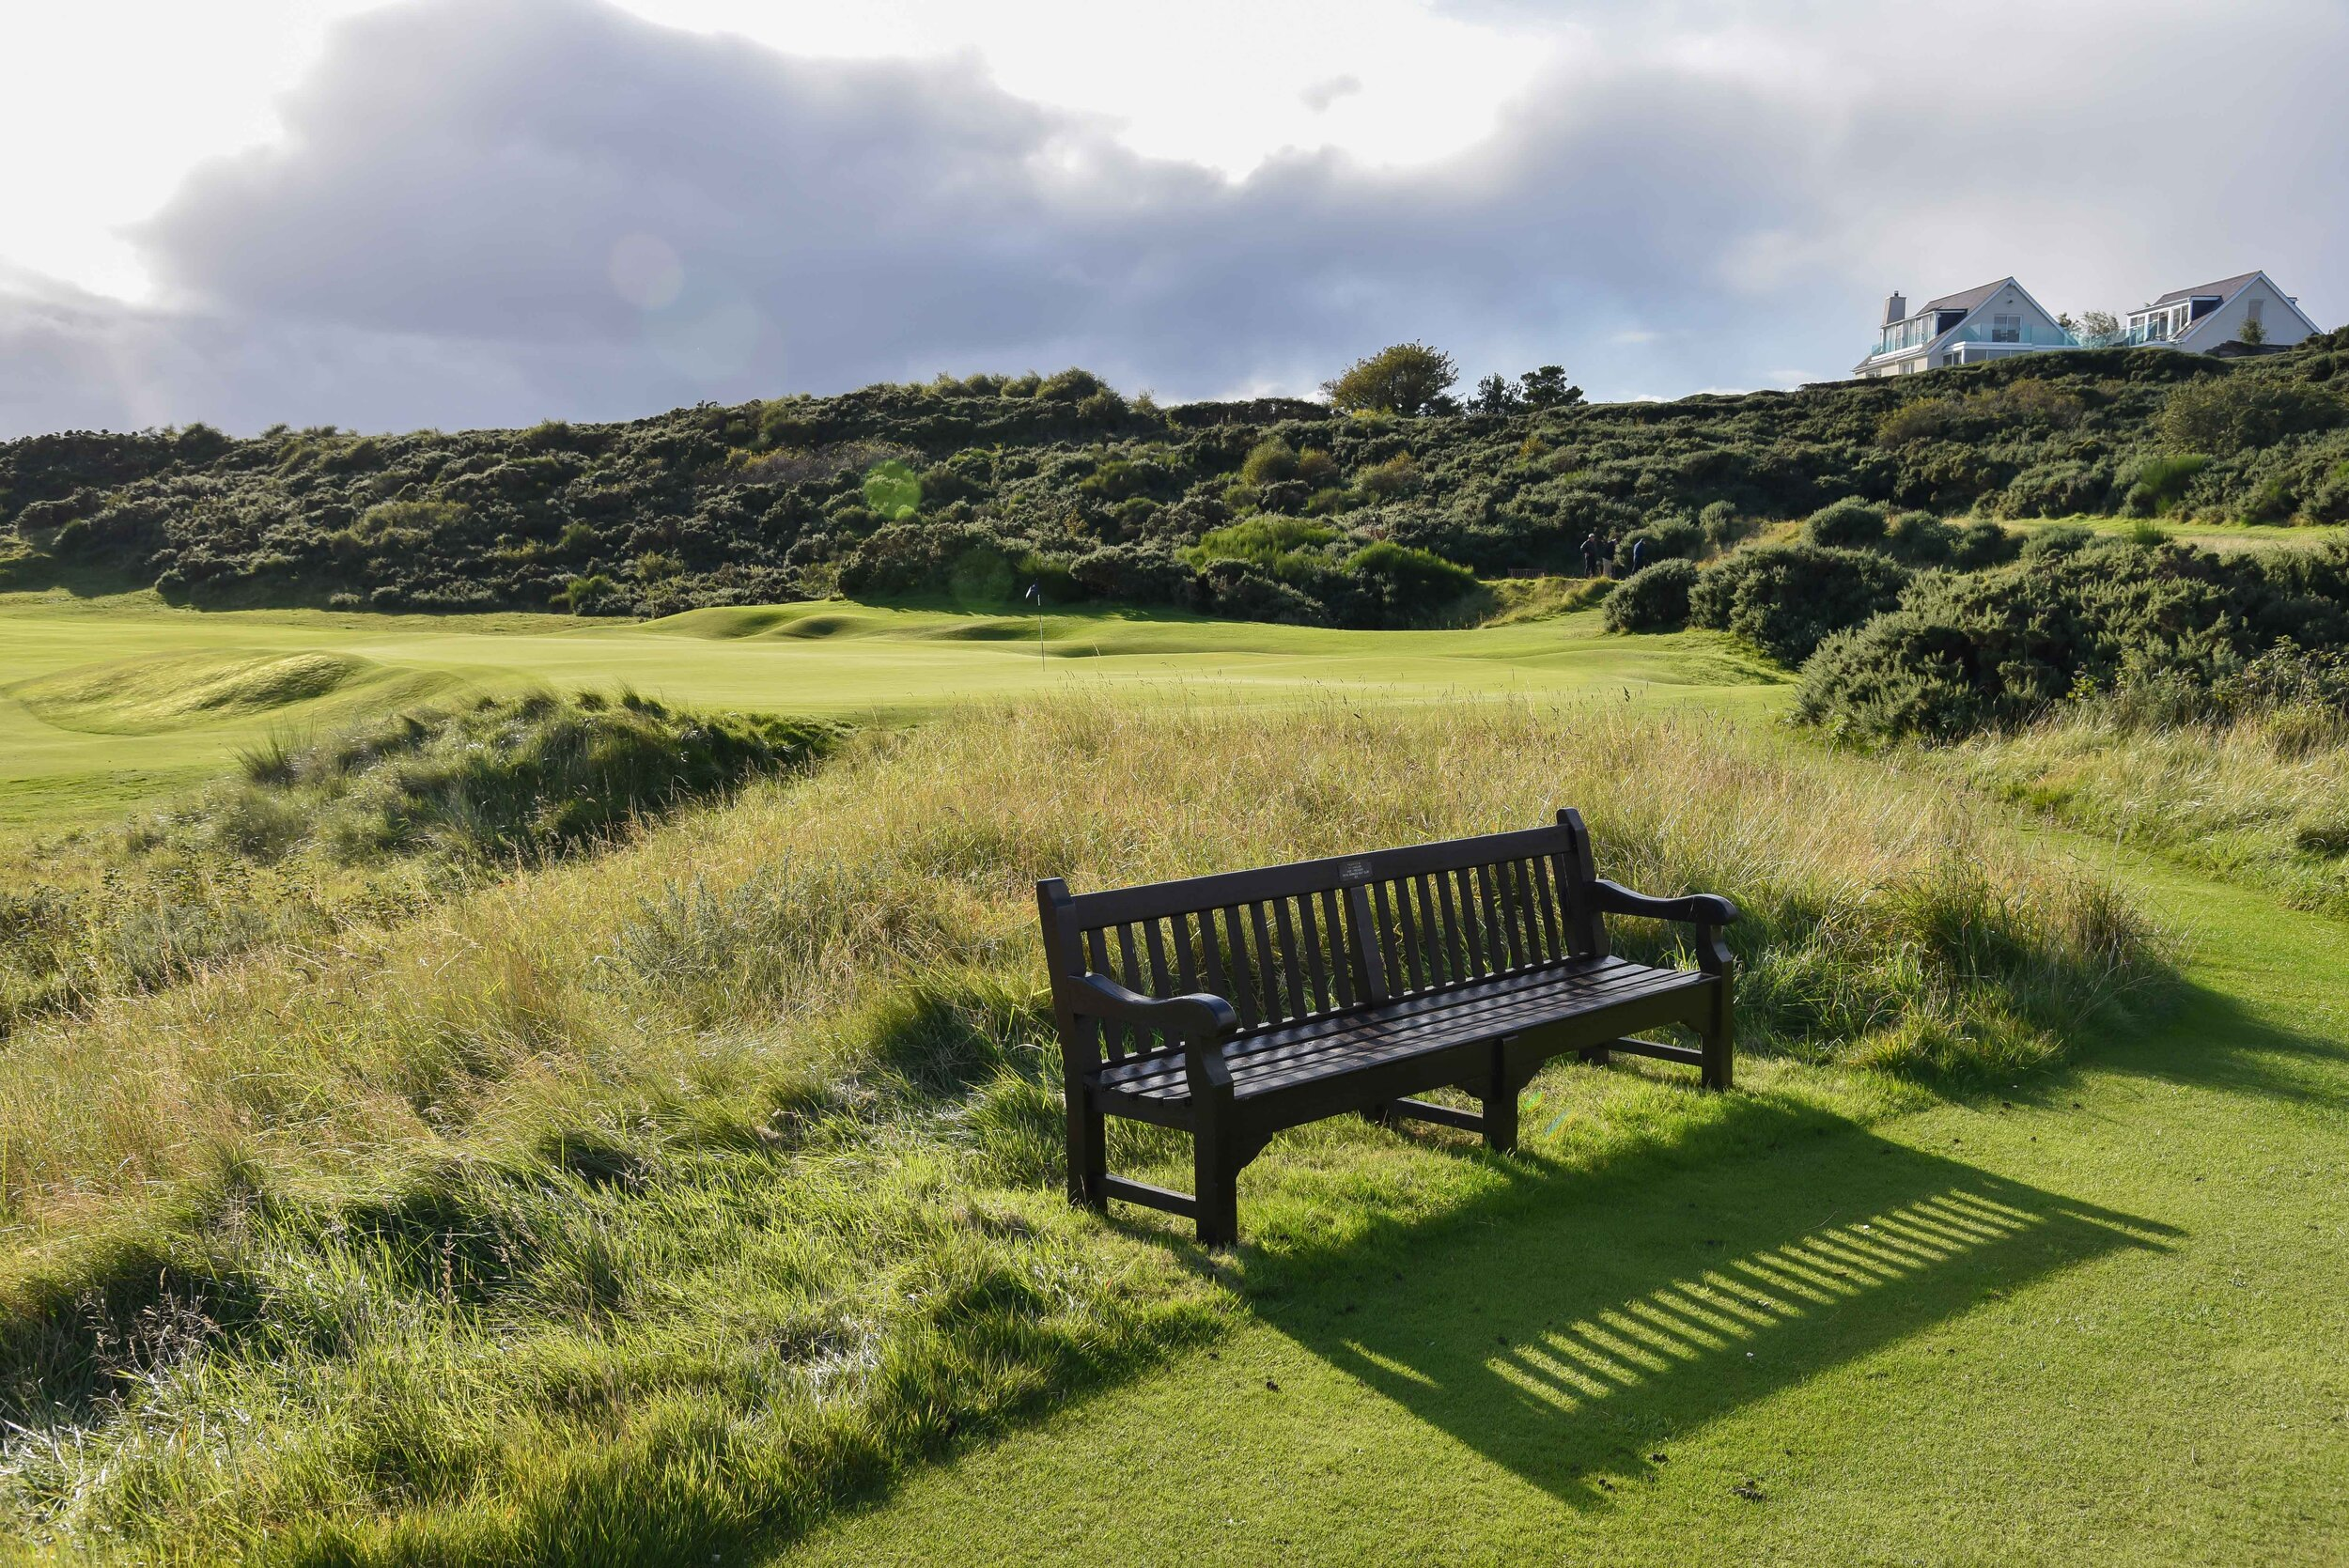 The bench behind #11 looking back onto #4 green.